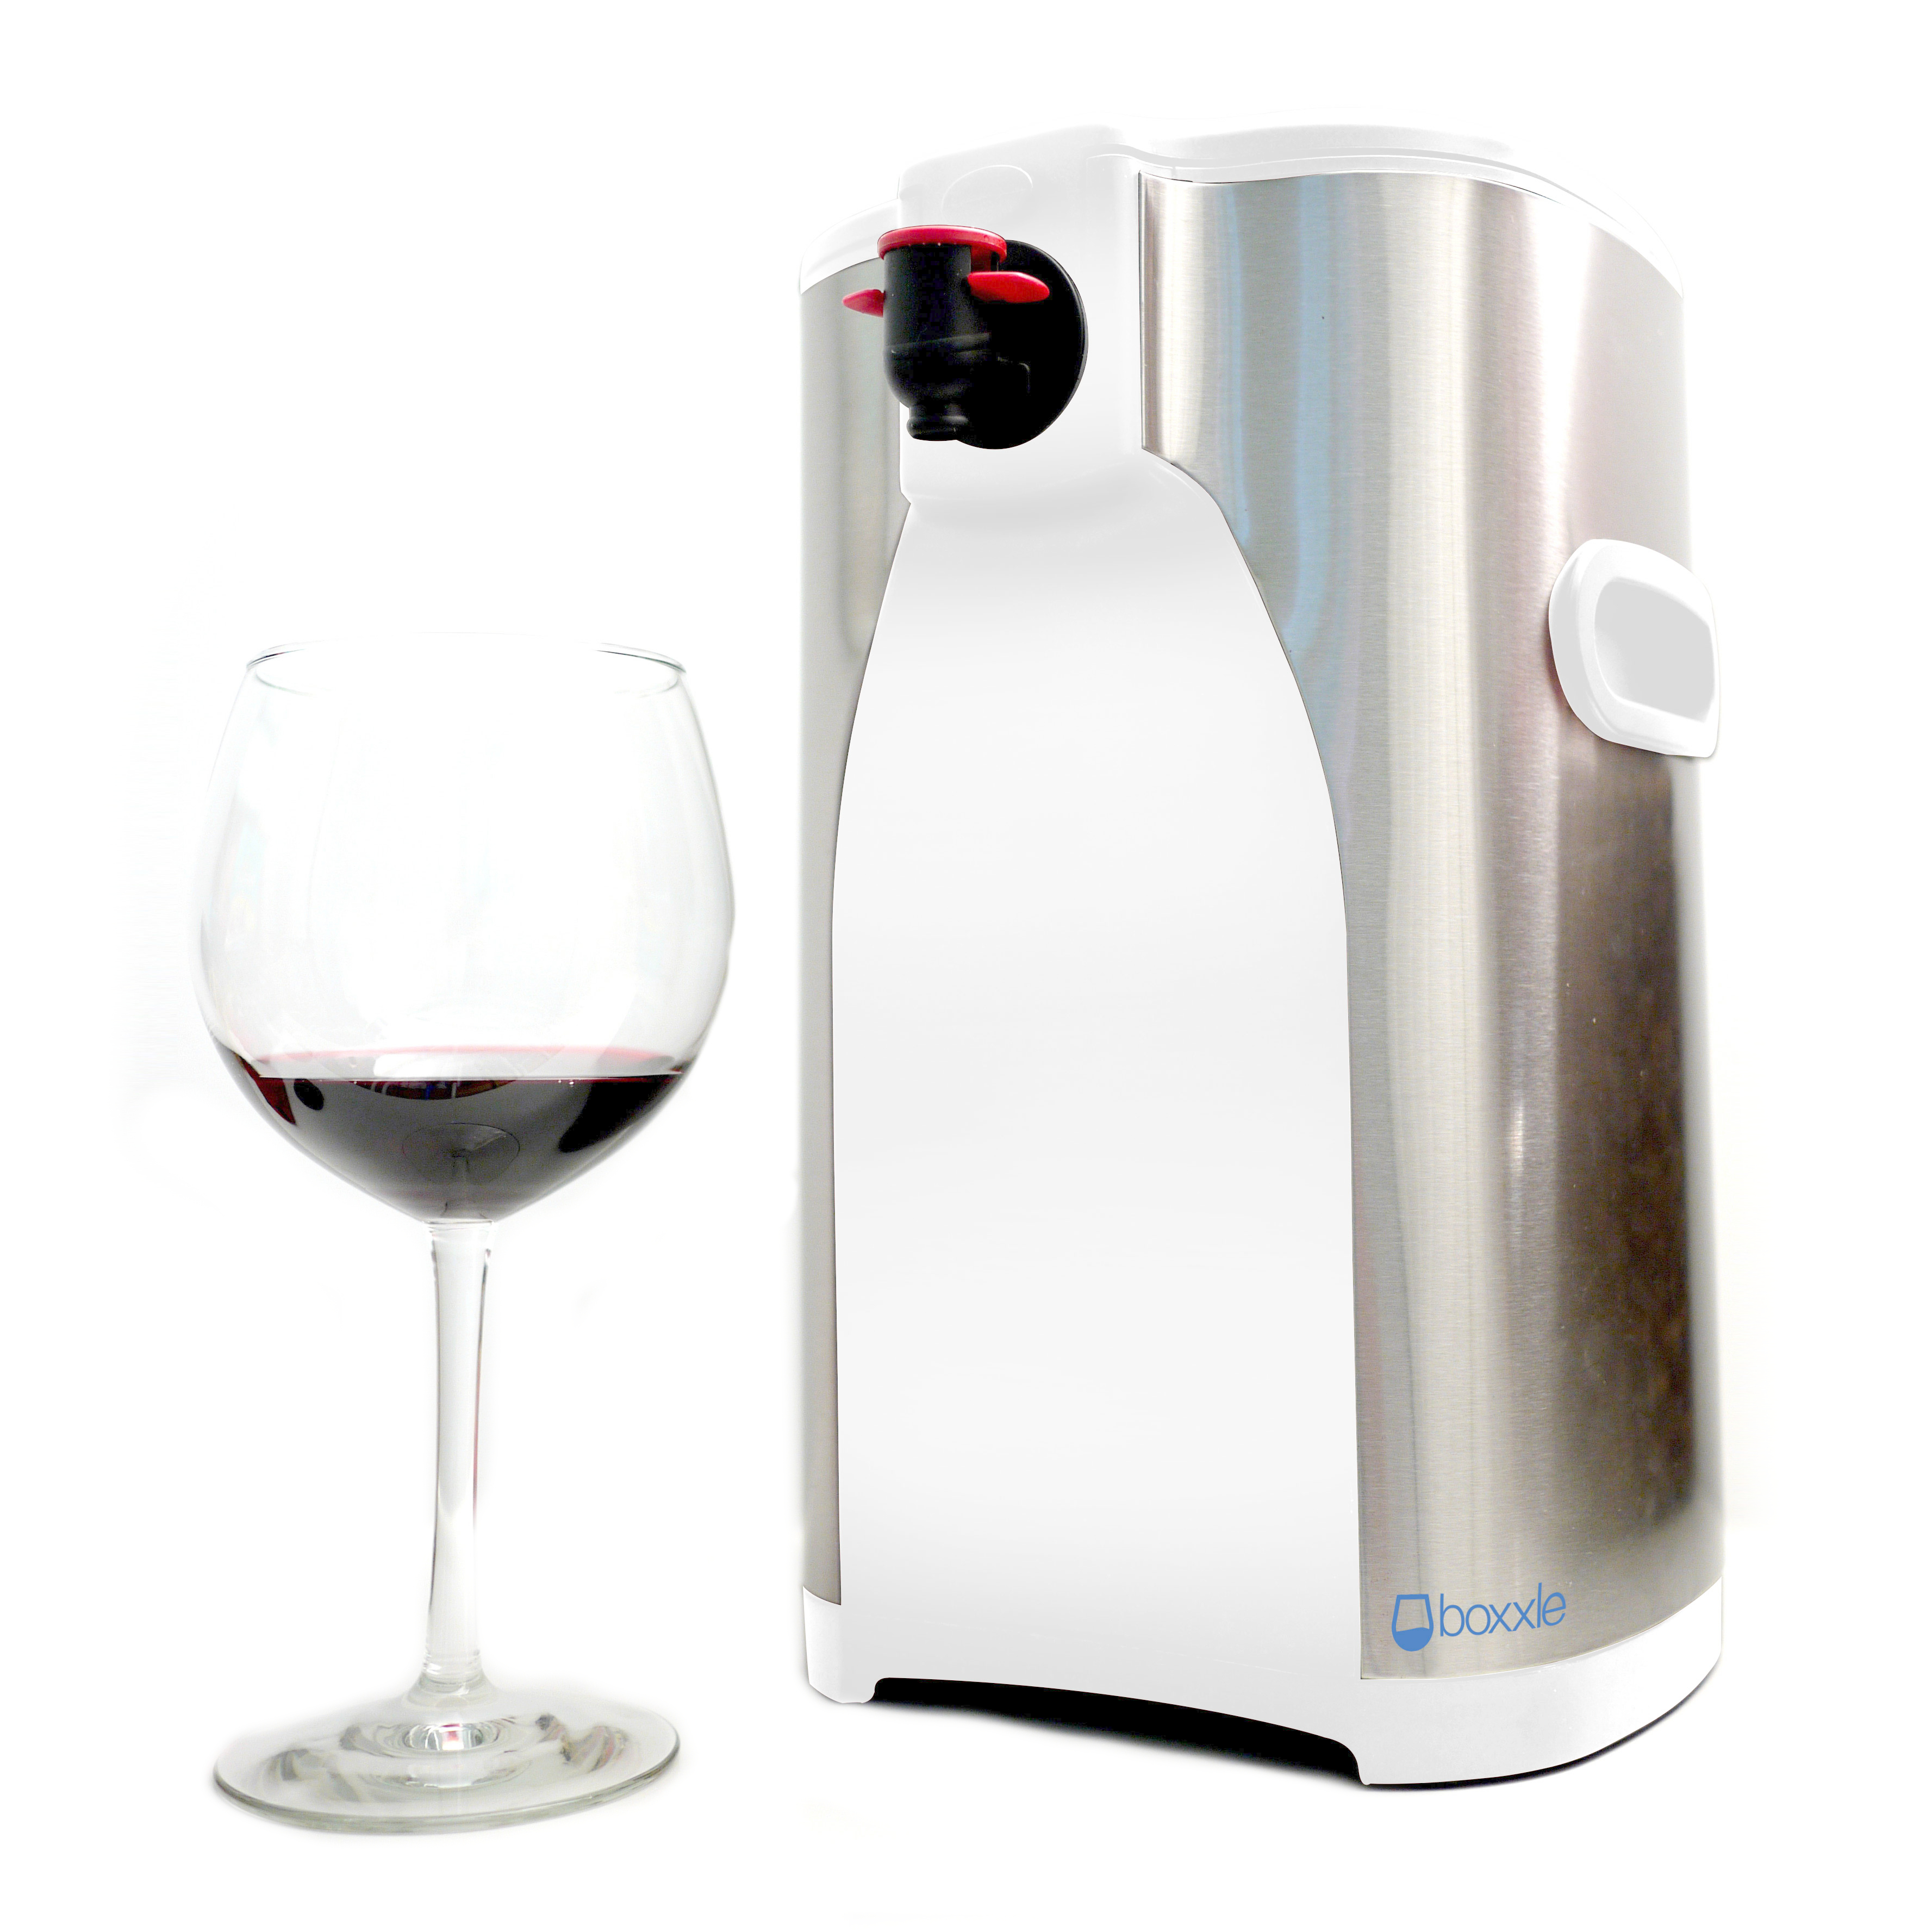 Boxxle Box White and Stainless Steel 3 Liter Box Wine Dispenser